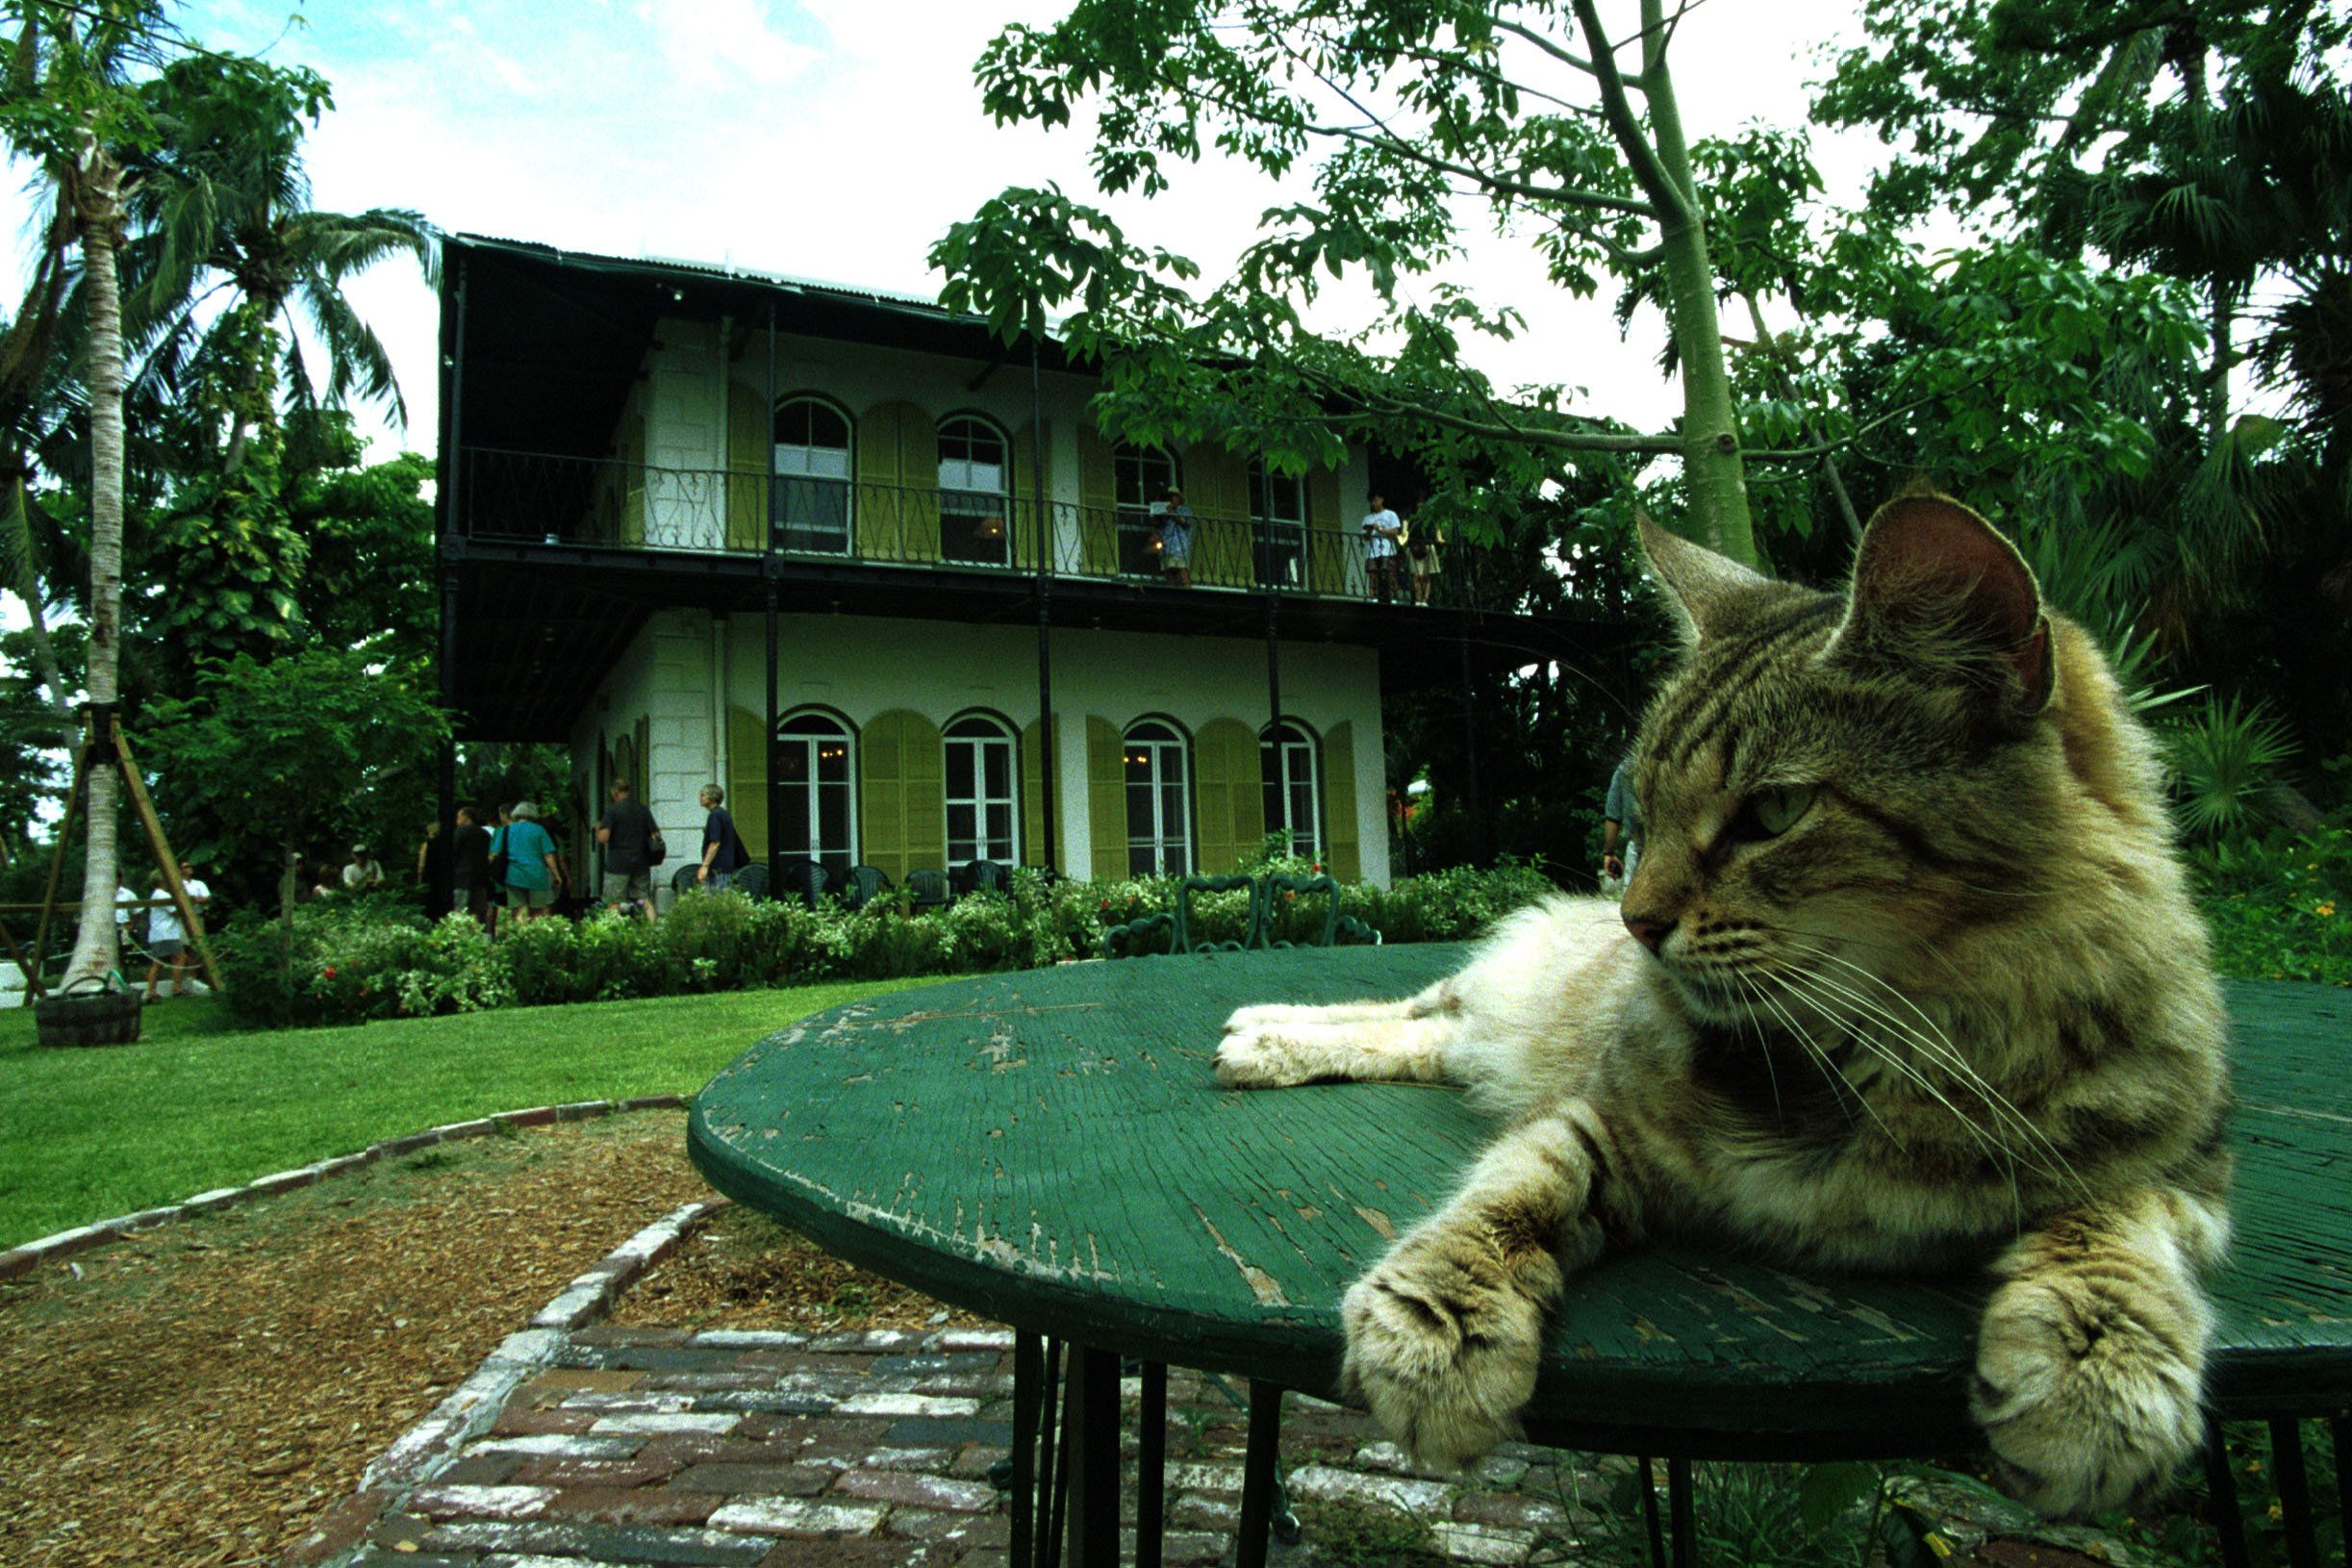 374412 02: A cat rests on a table in the garden of American author Ernest Hemingway''s home June 15, 1999 in Key West, Florida. (Photo by Georges De Keerle/Liaison)